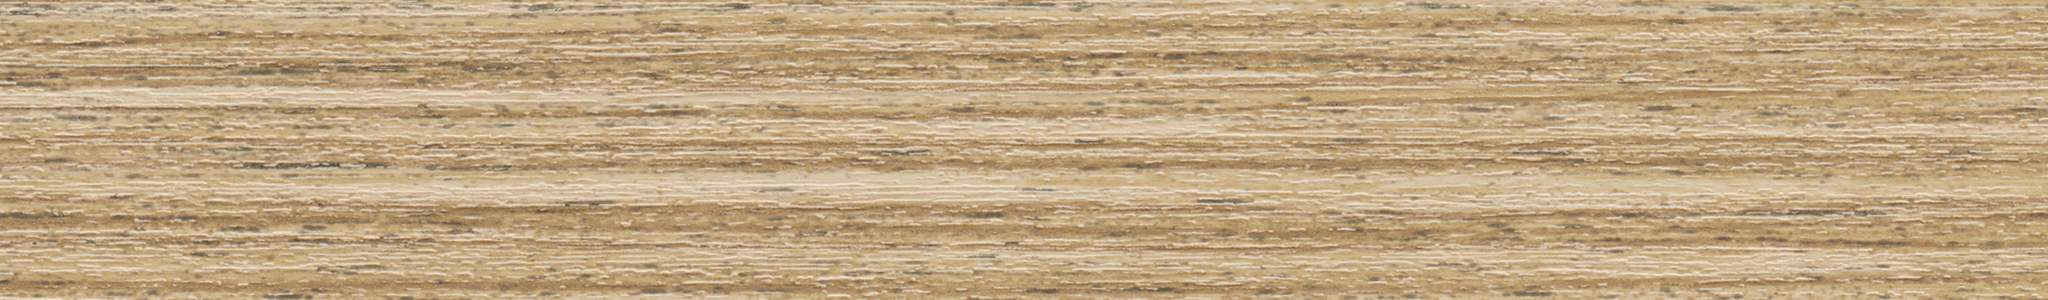 HD 254033 ABS Edge Hemlock Pore